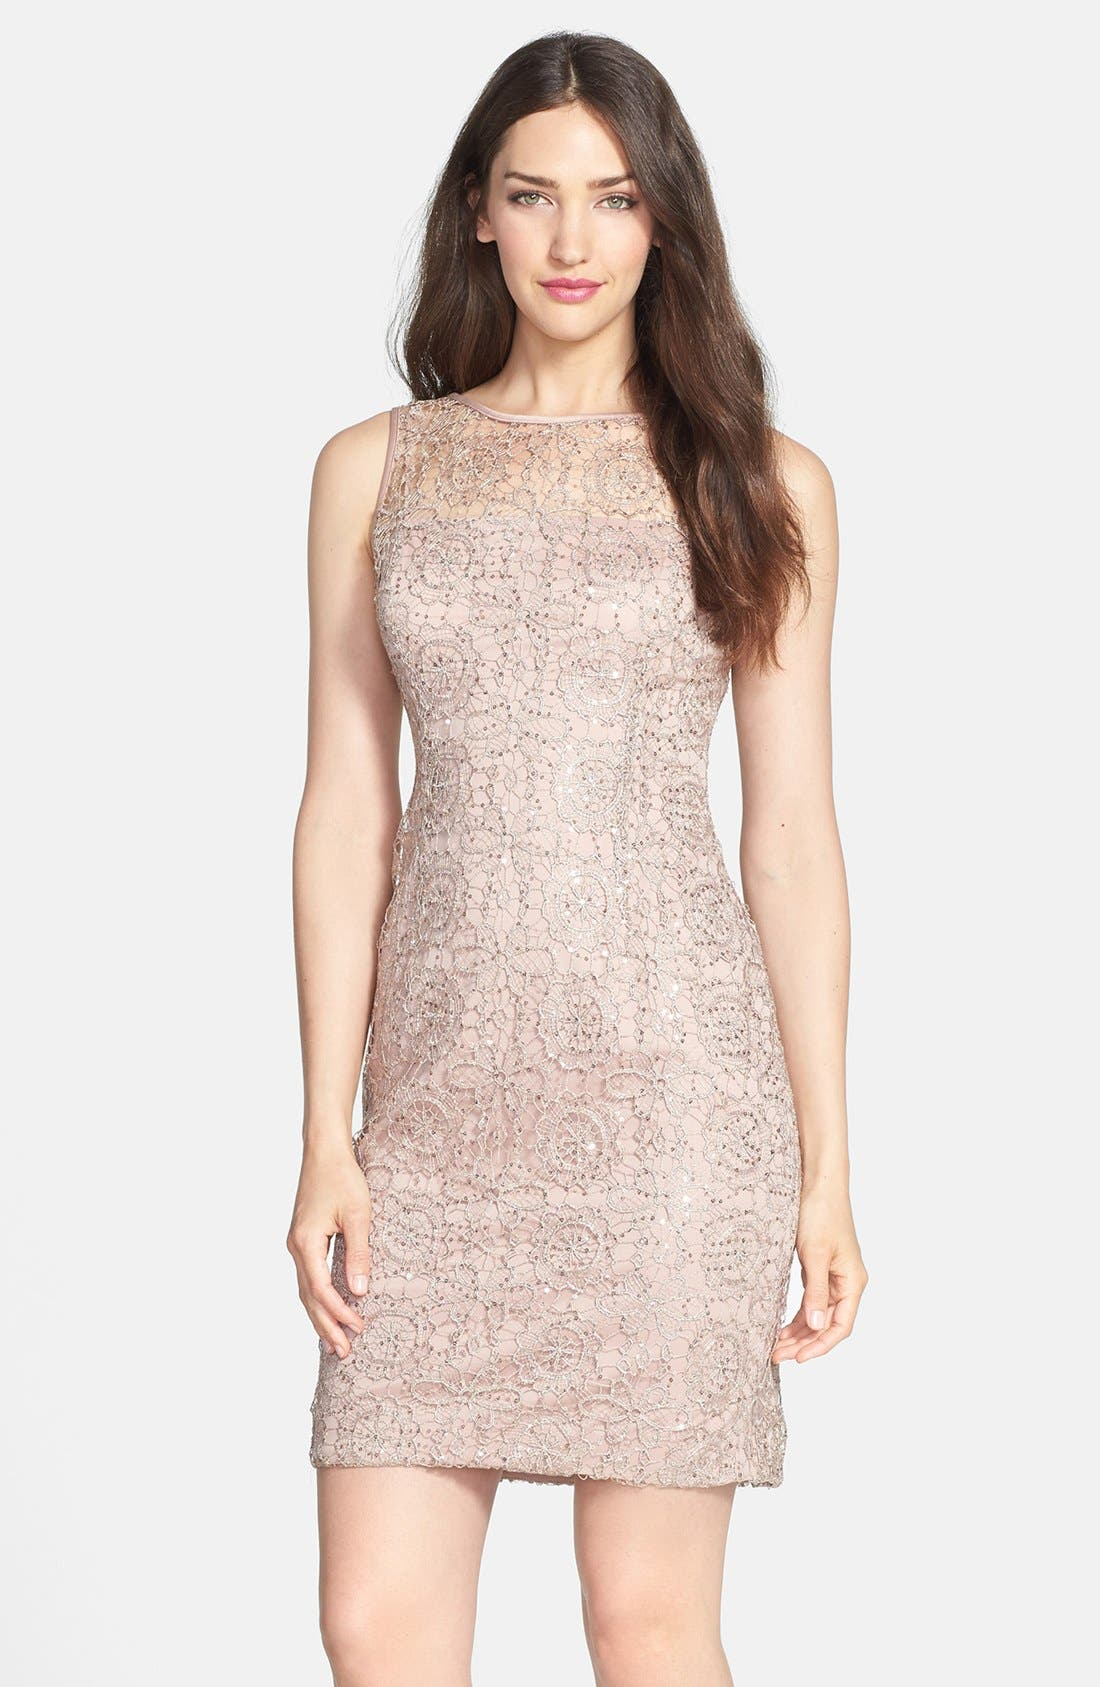 Main Image - Adrianna Papell Sleeveless Sequin Metallic Lace Dress